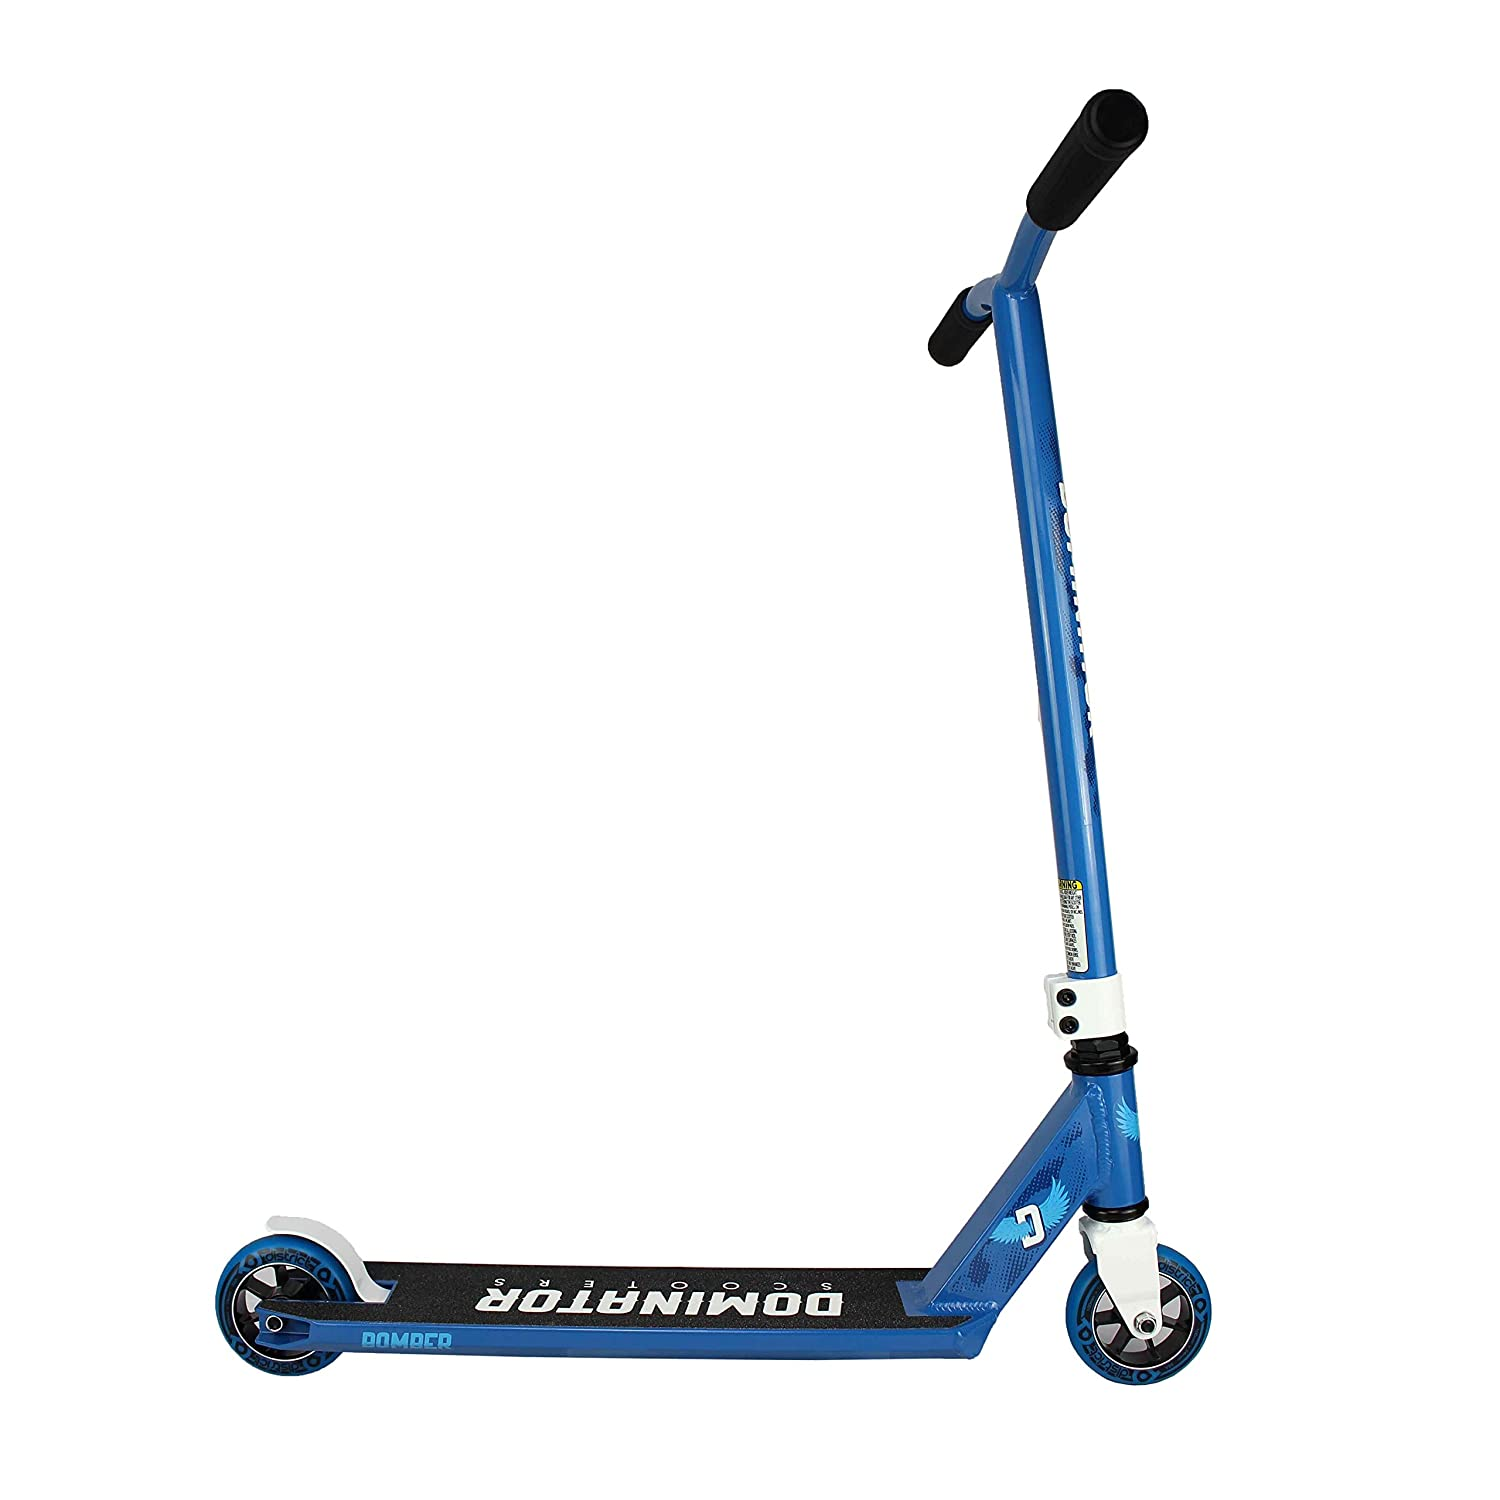 Dominator Bomber Pro Scooter (Blue)